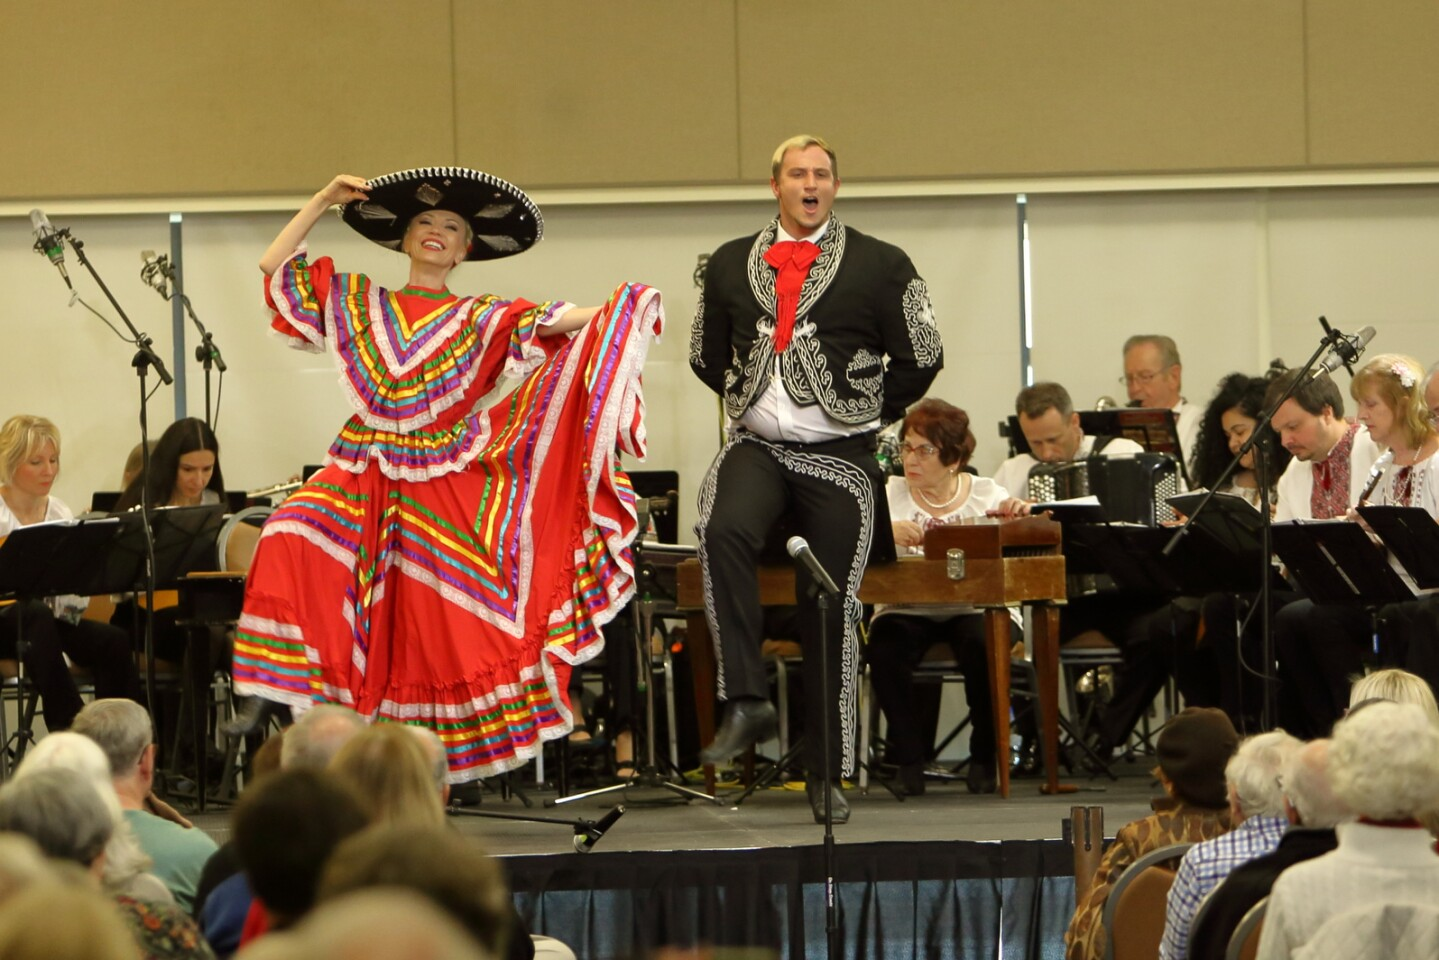 The Los Angeles Balalaika Orchestra plays as Larissa Nazarenko and Tyler Worth dance to a traditional Mexican song